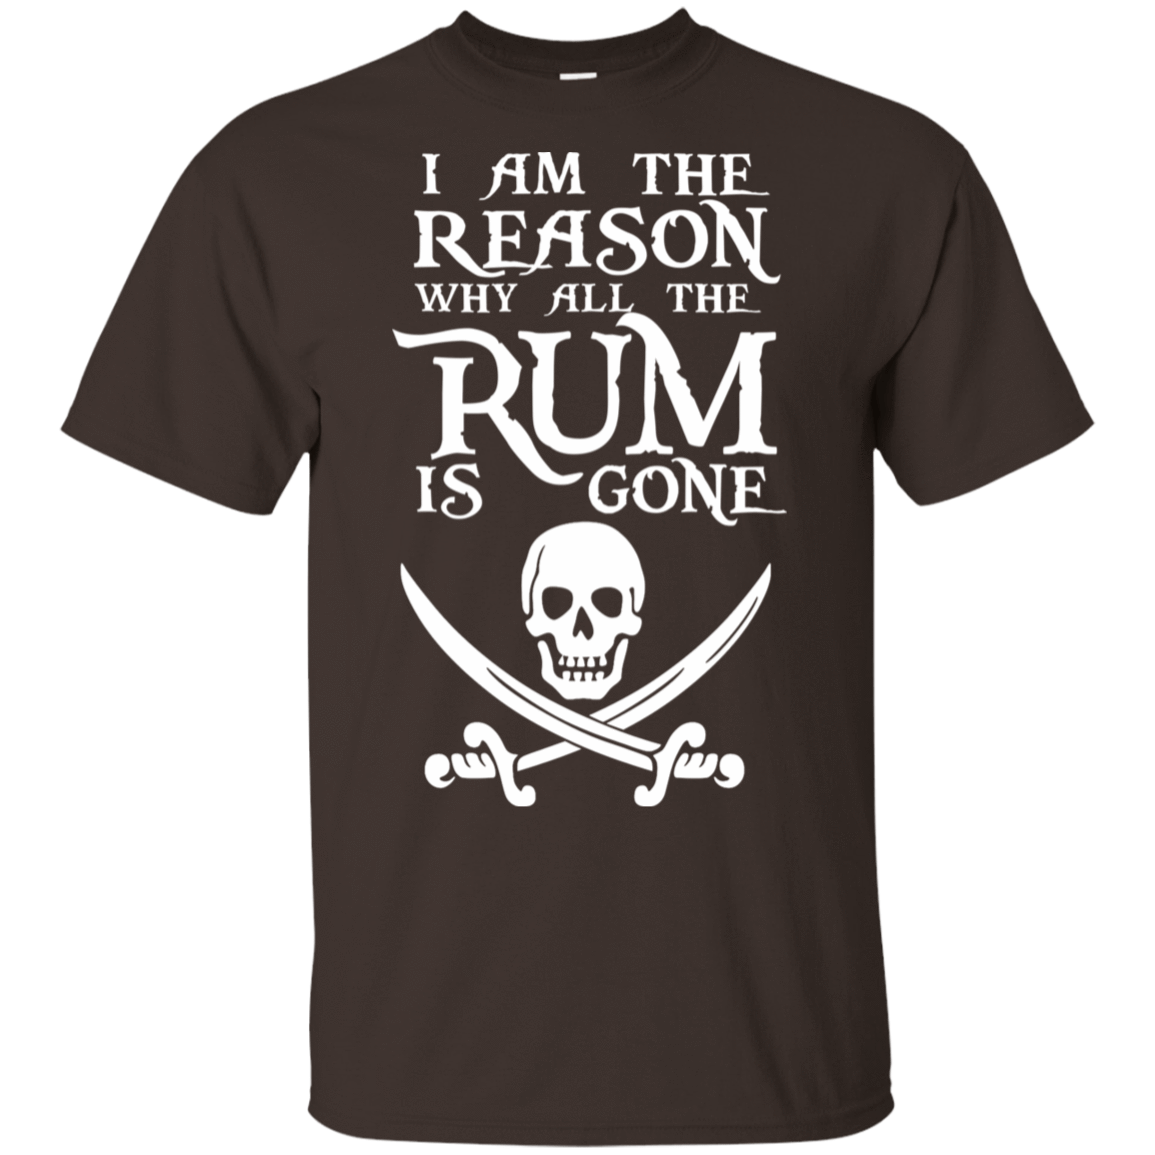 I Am The Reason Why All The Rum Is Gone 22-2283-73425463-12087 - Tee Ript